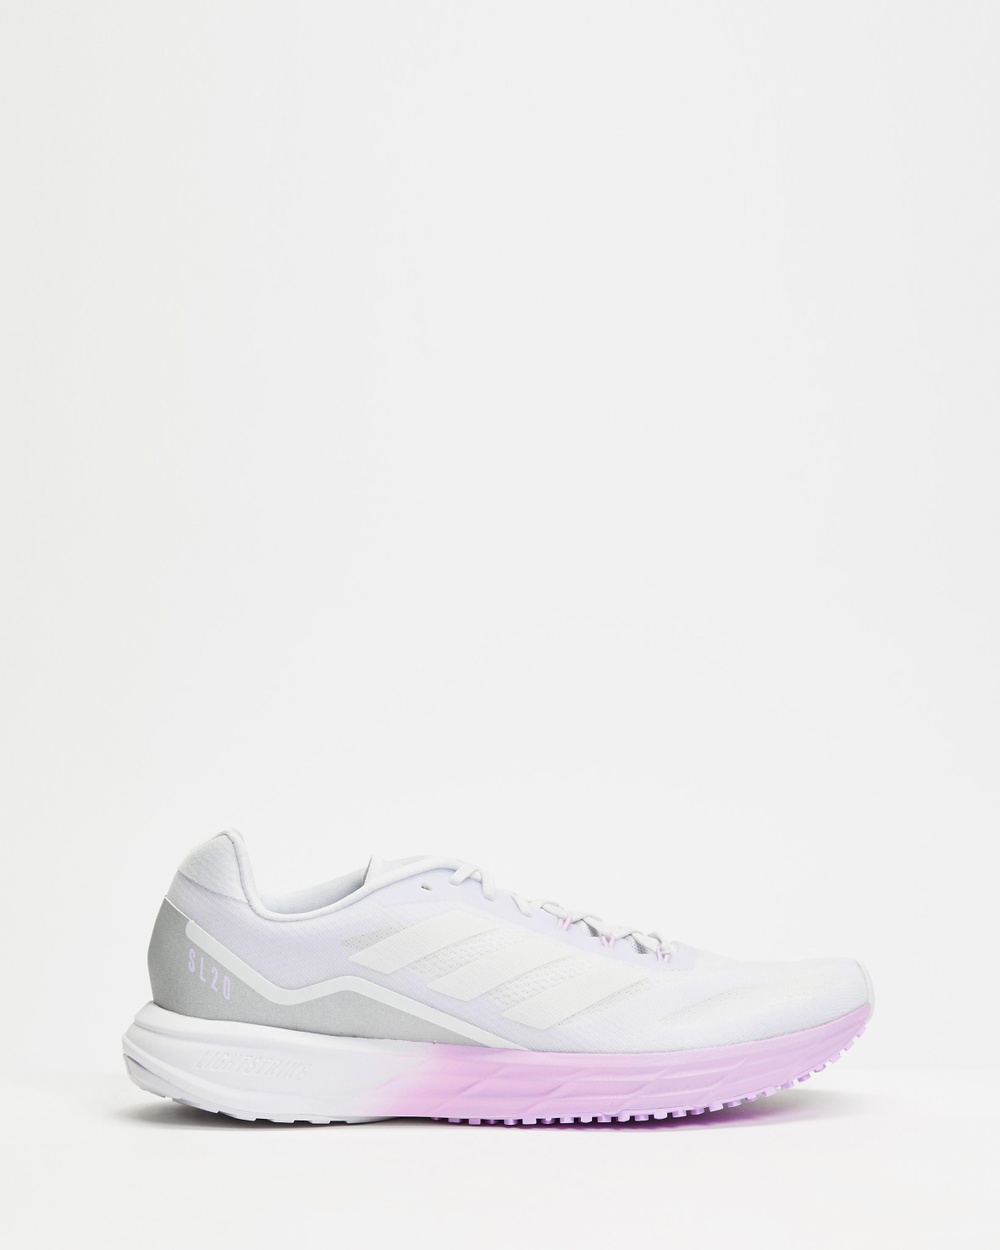 adidas Performance SL20.2 Women's Outdoor Shoes Dash Grey, Cloud White & Clear Lilac